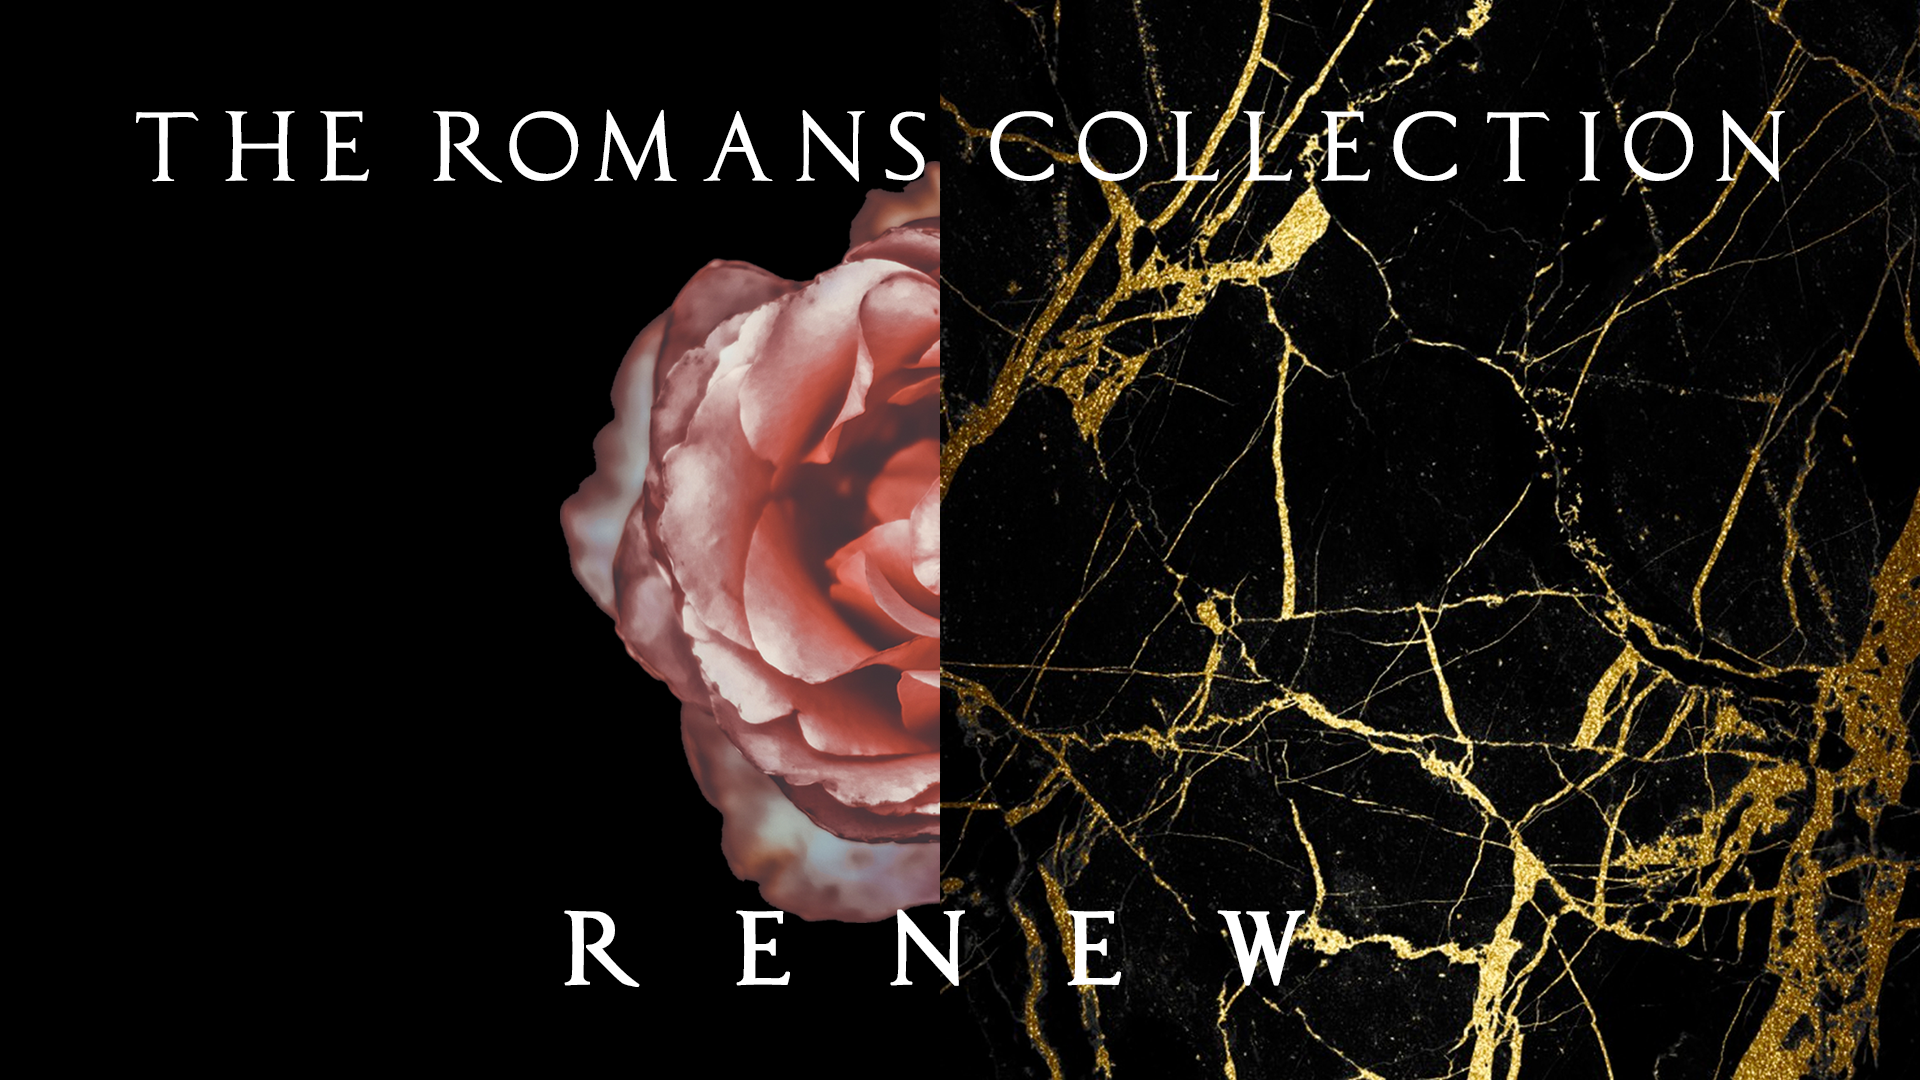 romans collection horizontal.png